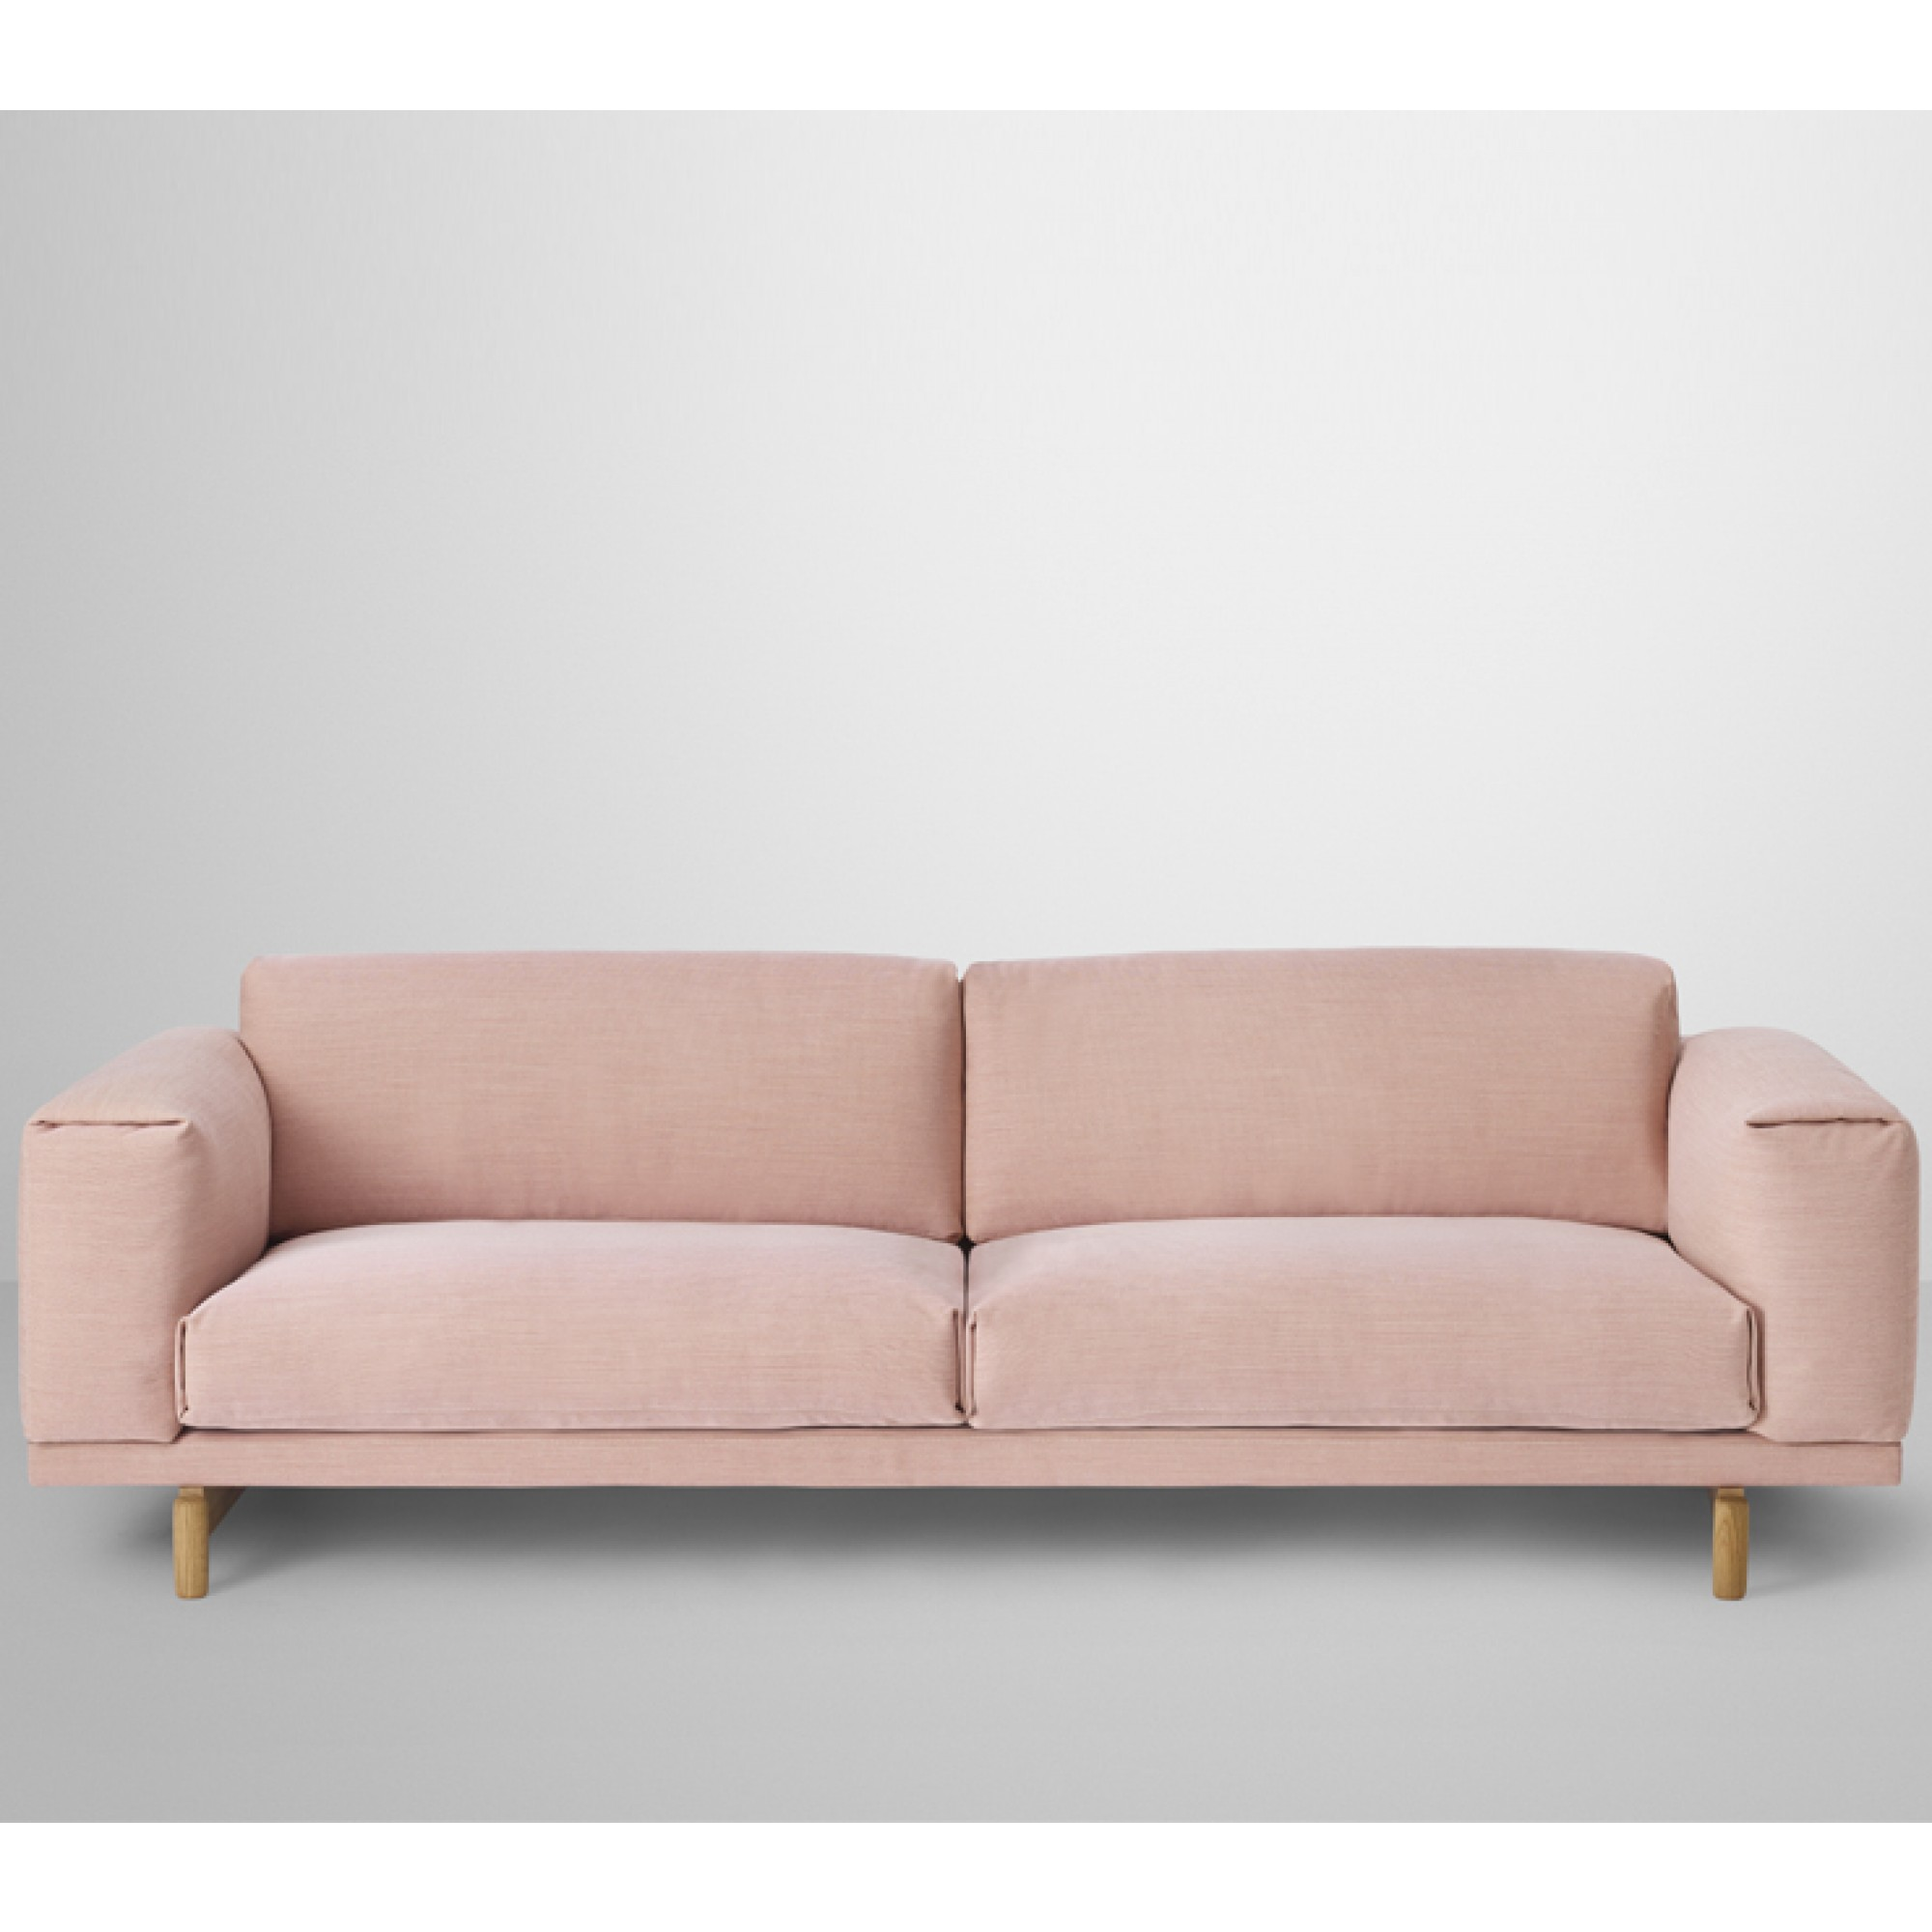 Full Size of Muuto Compose Sofa Review Furniture List Outline 2 Seater 3 Sofabord Cecilie Manz Uk Airy Tilbud Rest By Luxury Interior Online Shop Schillig Hussen Grau Stoff Sofa Muuto Sofa